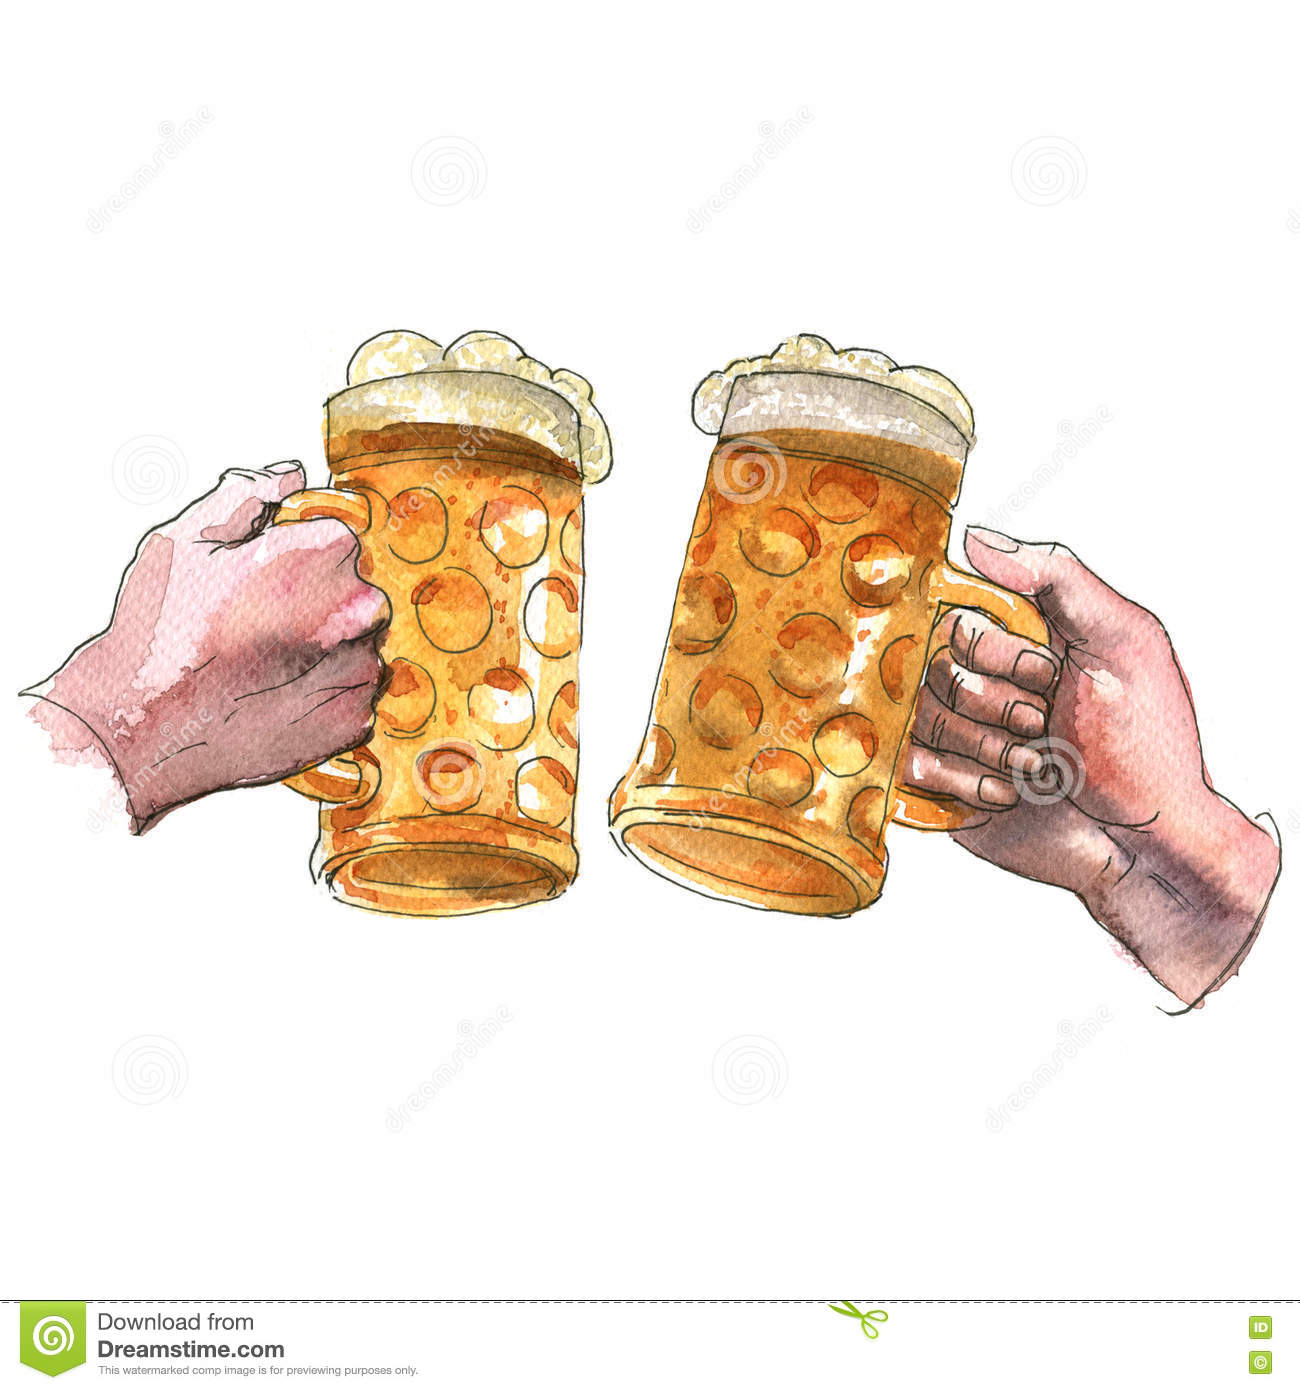 Two hands holding beer mugs making toast, cheers, watercolor illustration